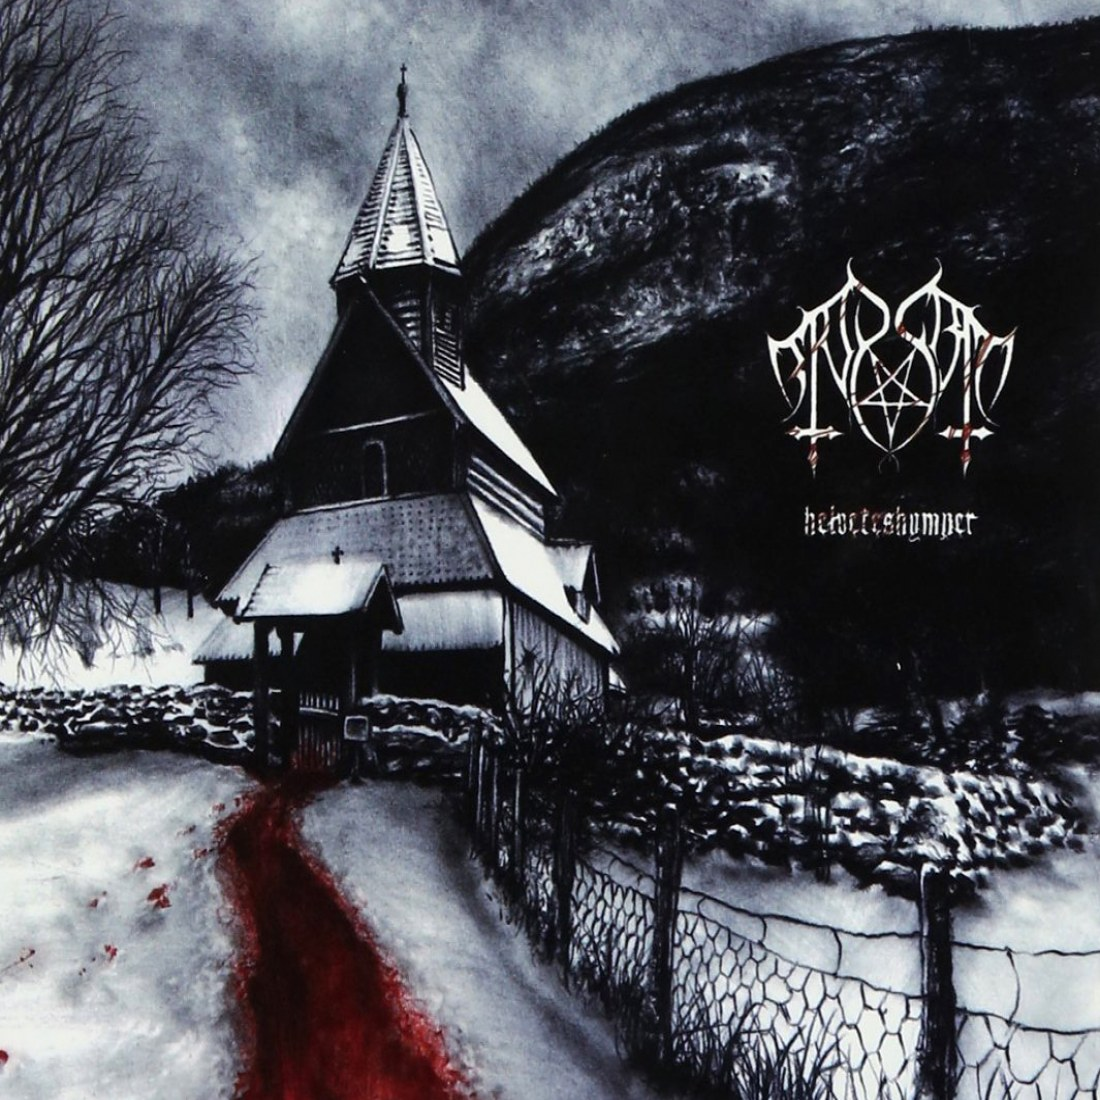 Review for Blodsrit - Helveteshymner